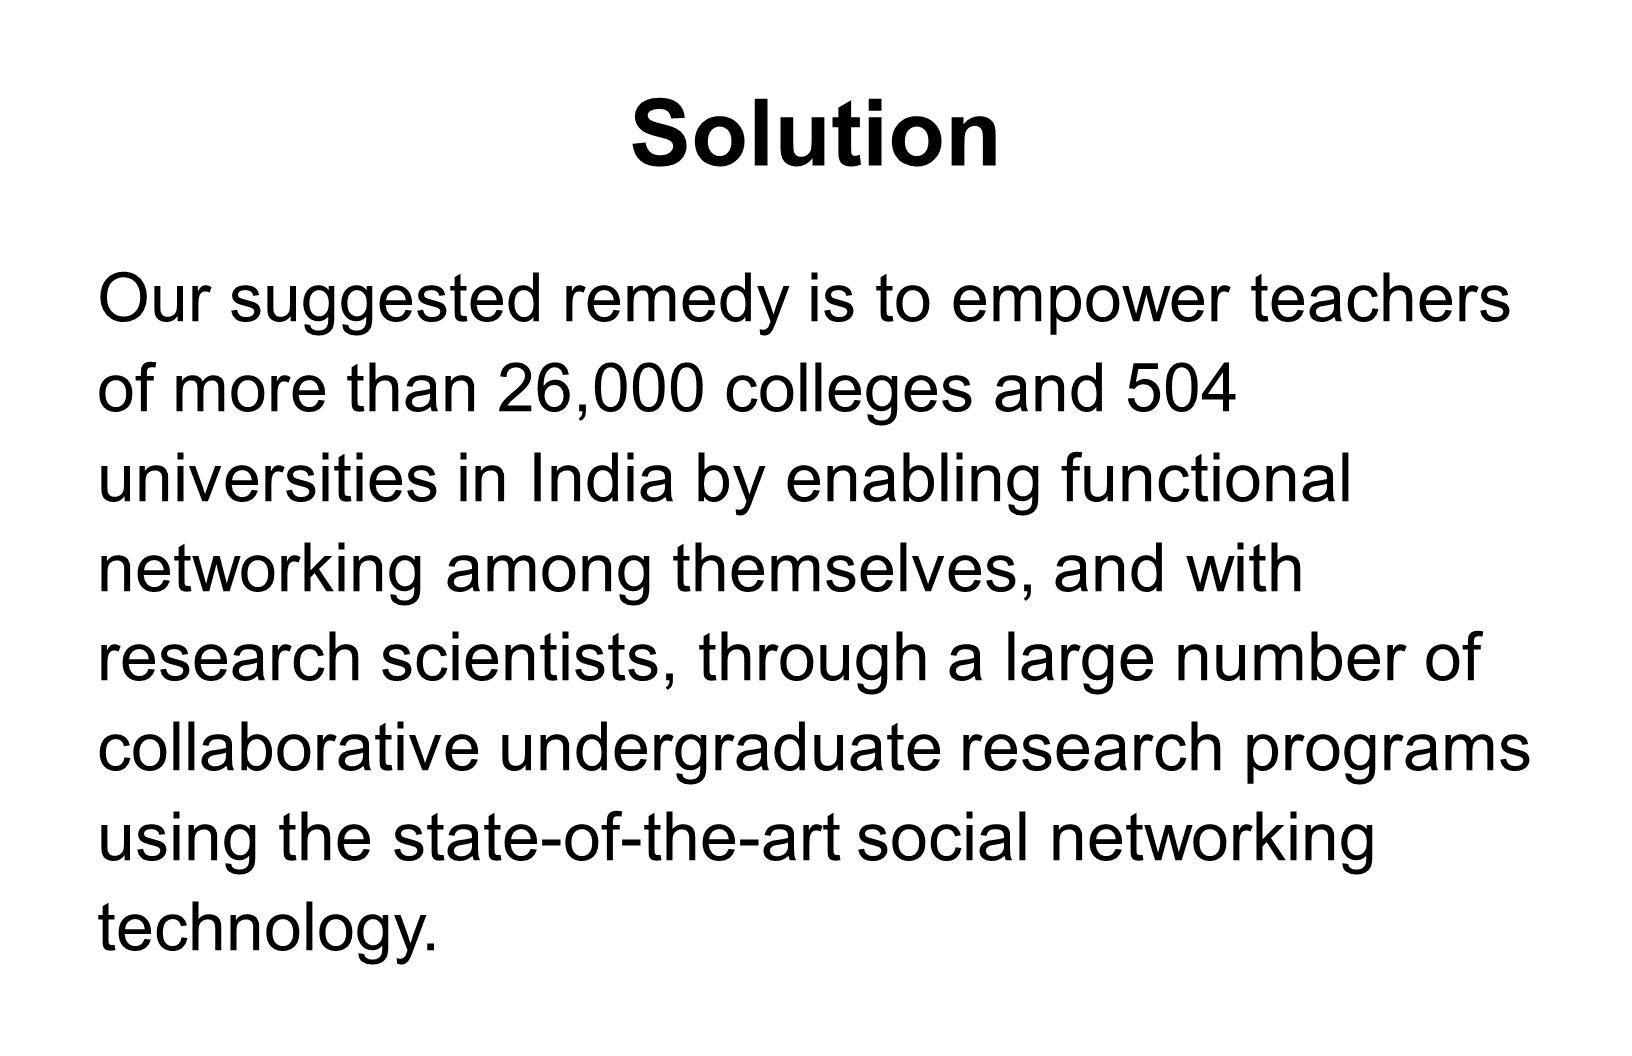 Solution Our suggested remedy is to empower teachers of more than 26,000 colleges and 504 universities in India by enabling functional networking amon